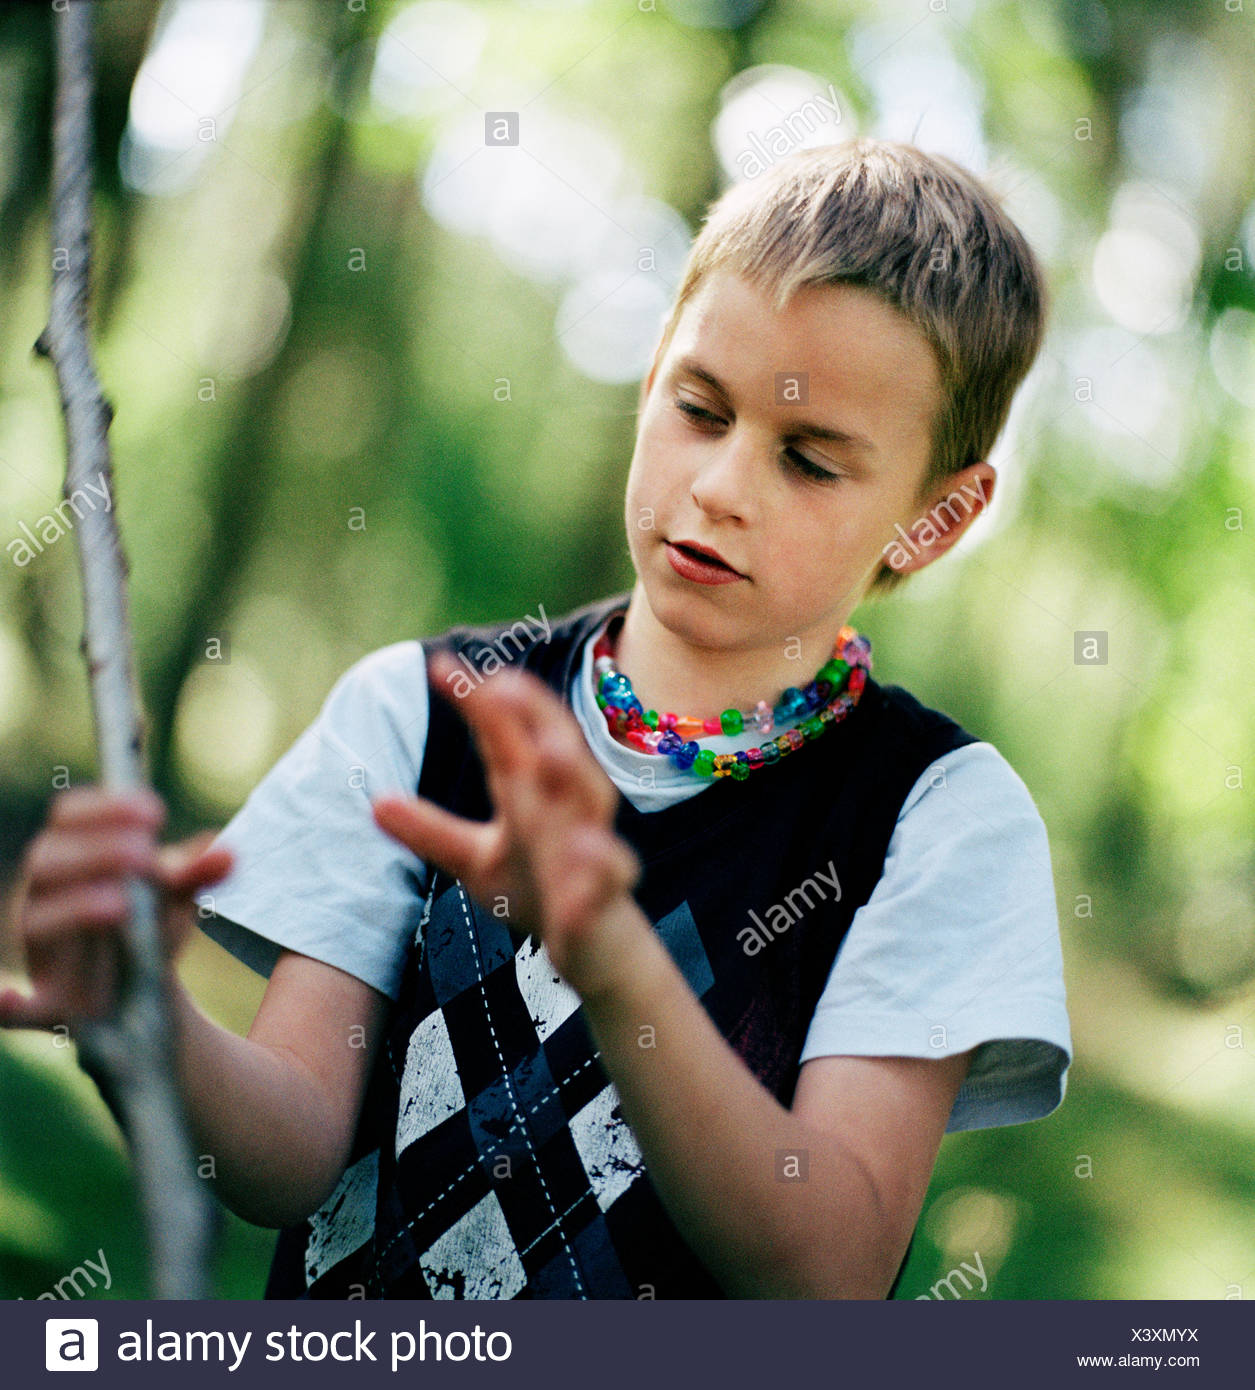 Boy playing in a forest, Sweden. - Stock Image